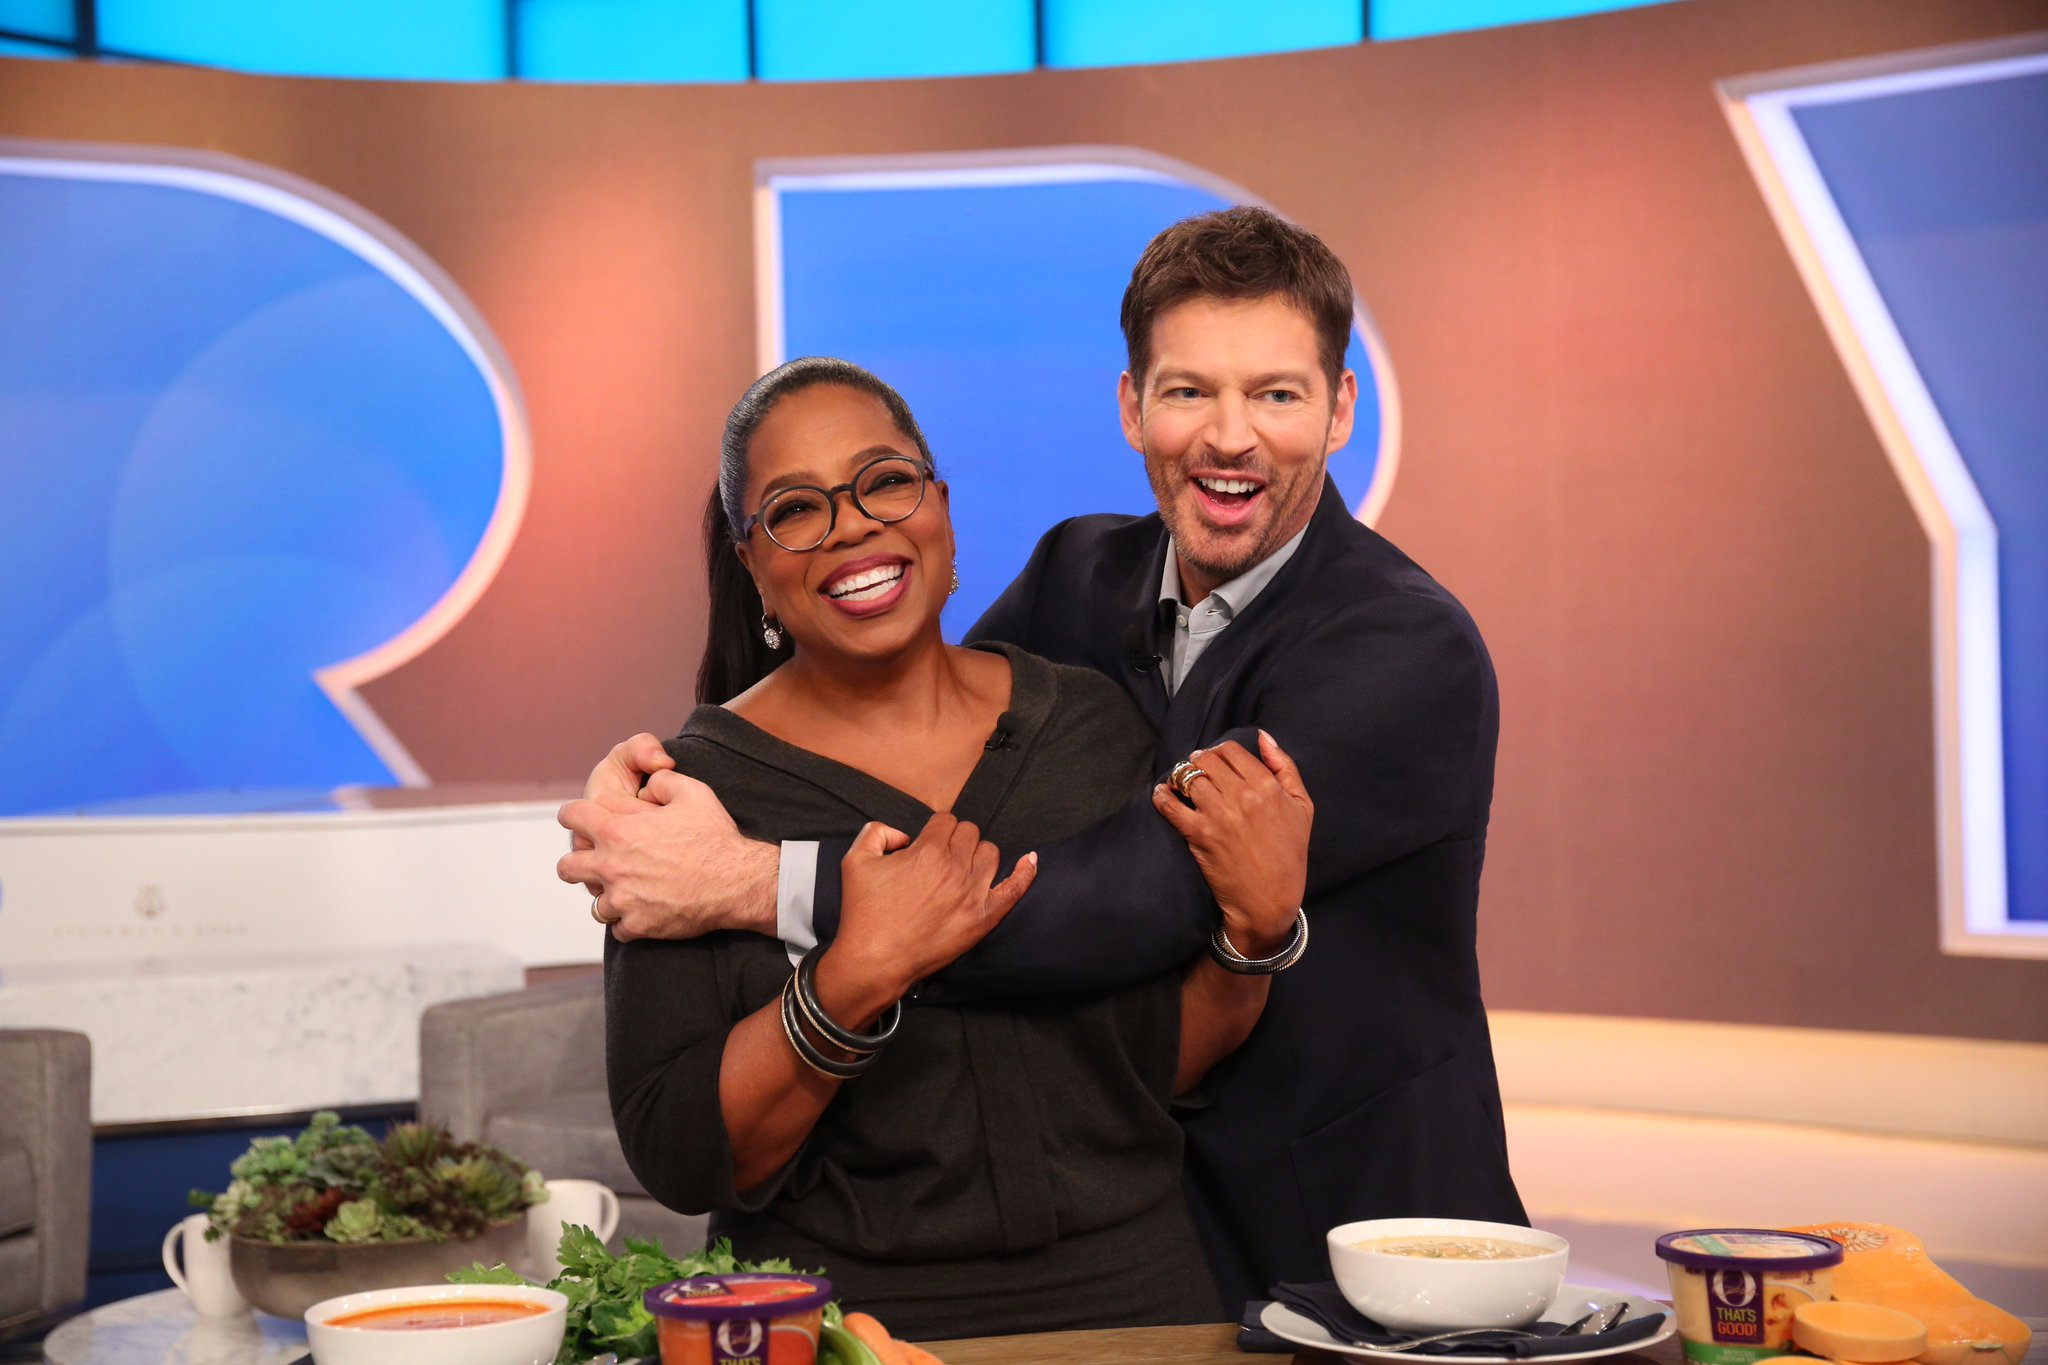 Look at that smile - @HarryConnickJR loved my tomato soup with a twist! #OThatsGood https://t.co/J5u4UNuSY1